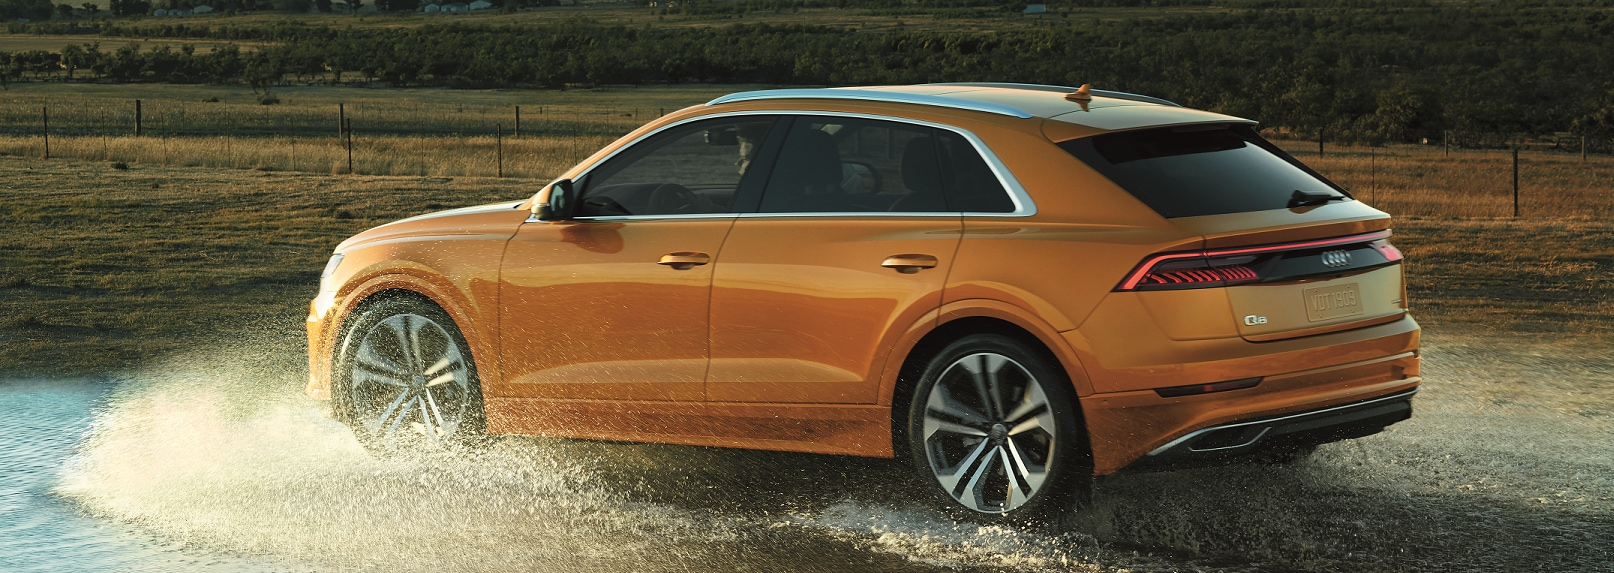 Audi Lease Deals >> Audi Lease Deals Dallas Tx Audi Grapevine